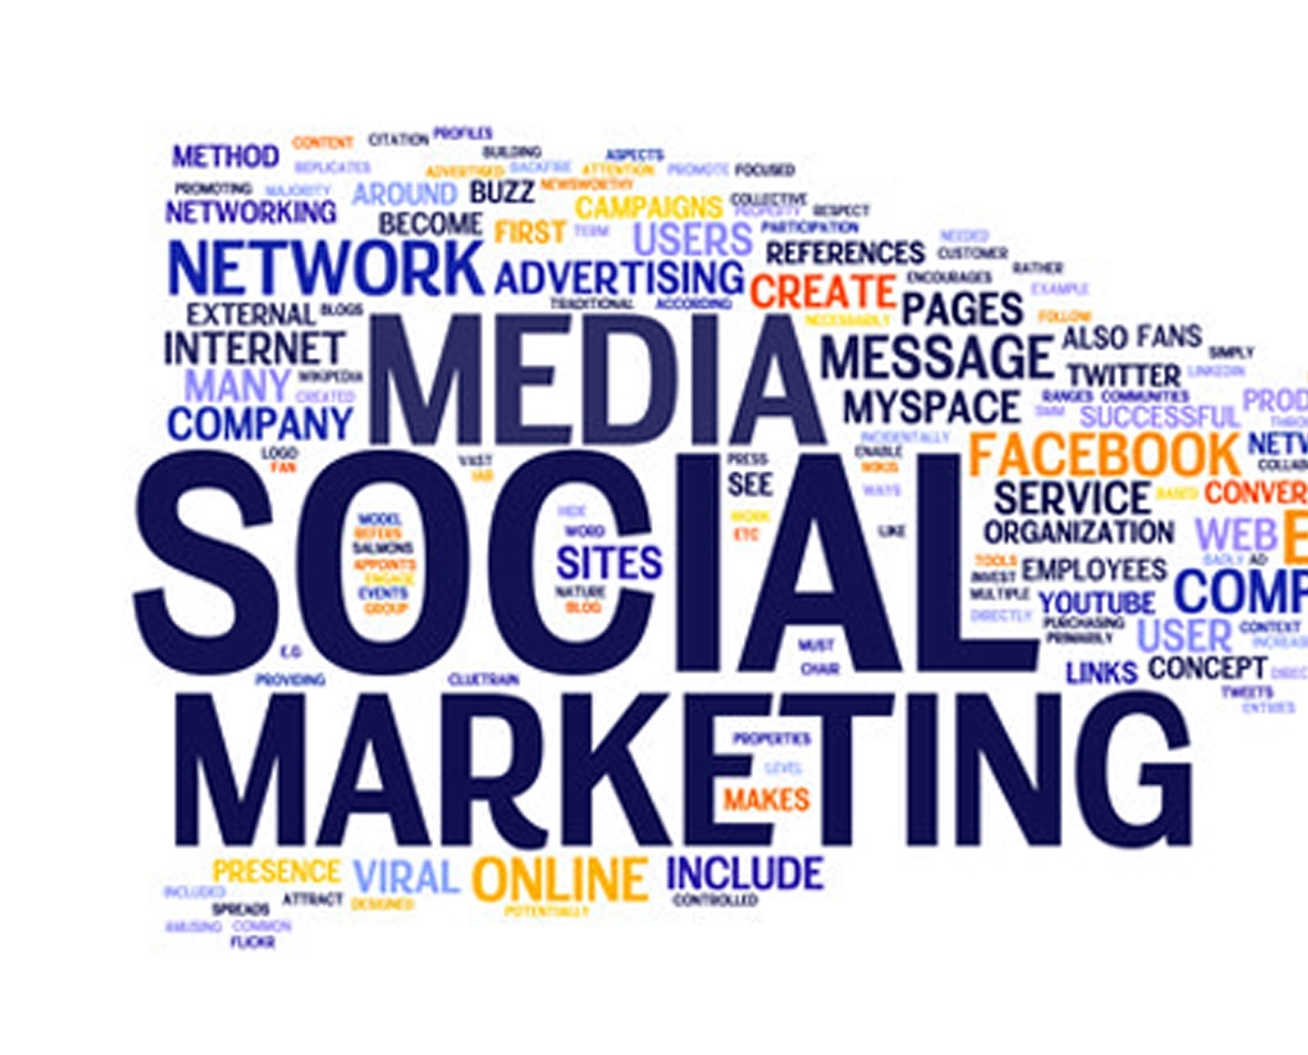 Social-Media-Marketing.jpg (1308×1055)